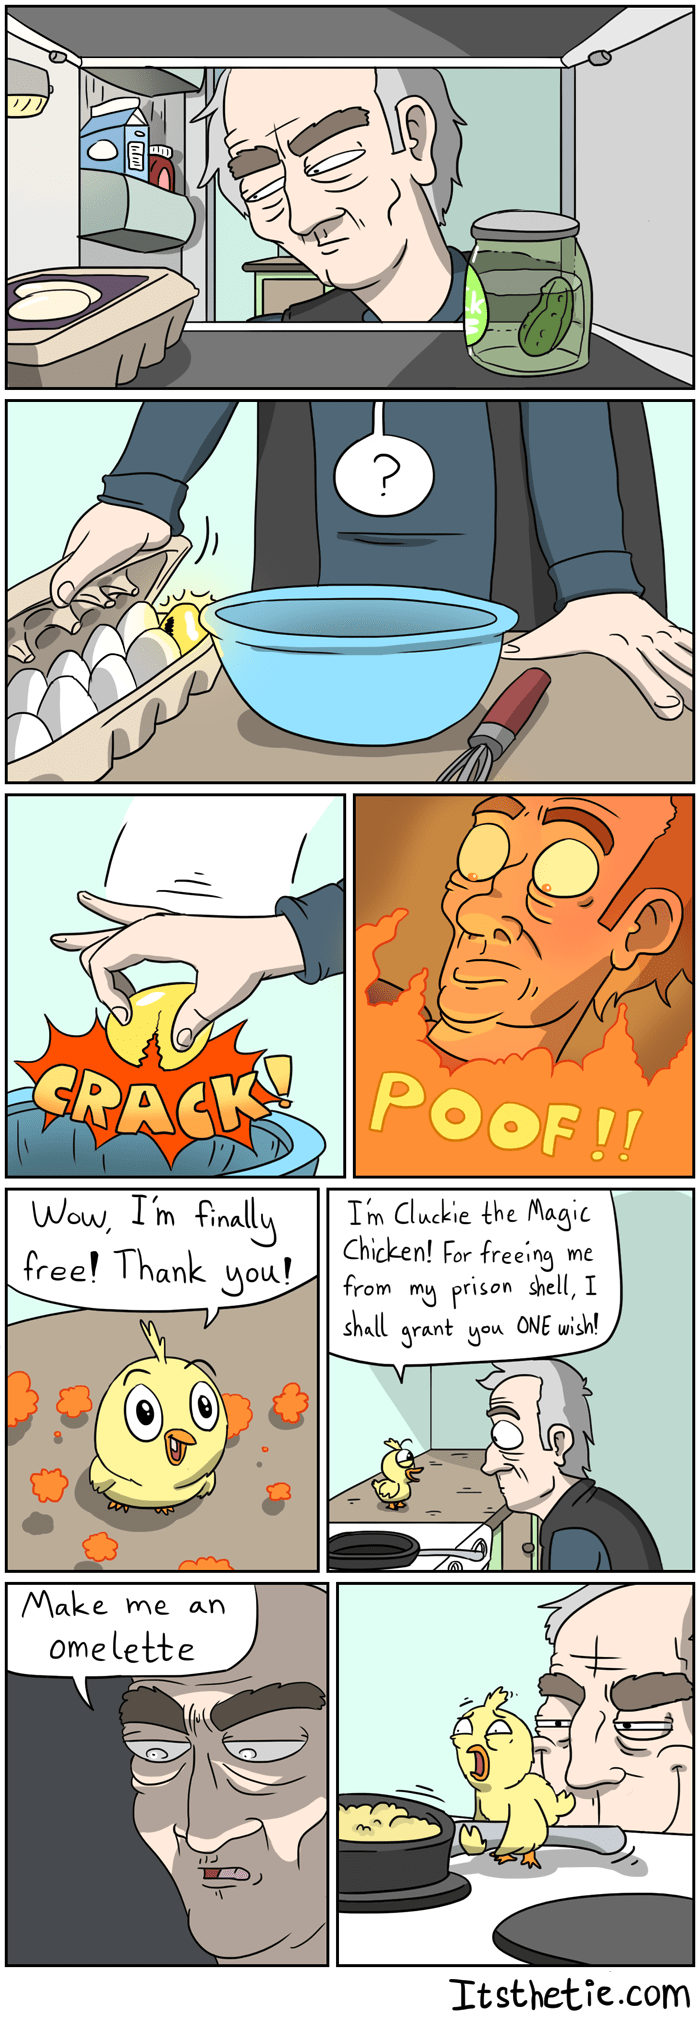 web-comics-chicken-making-eggs-quick-escalation